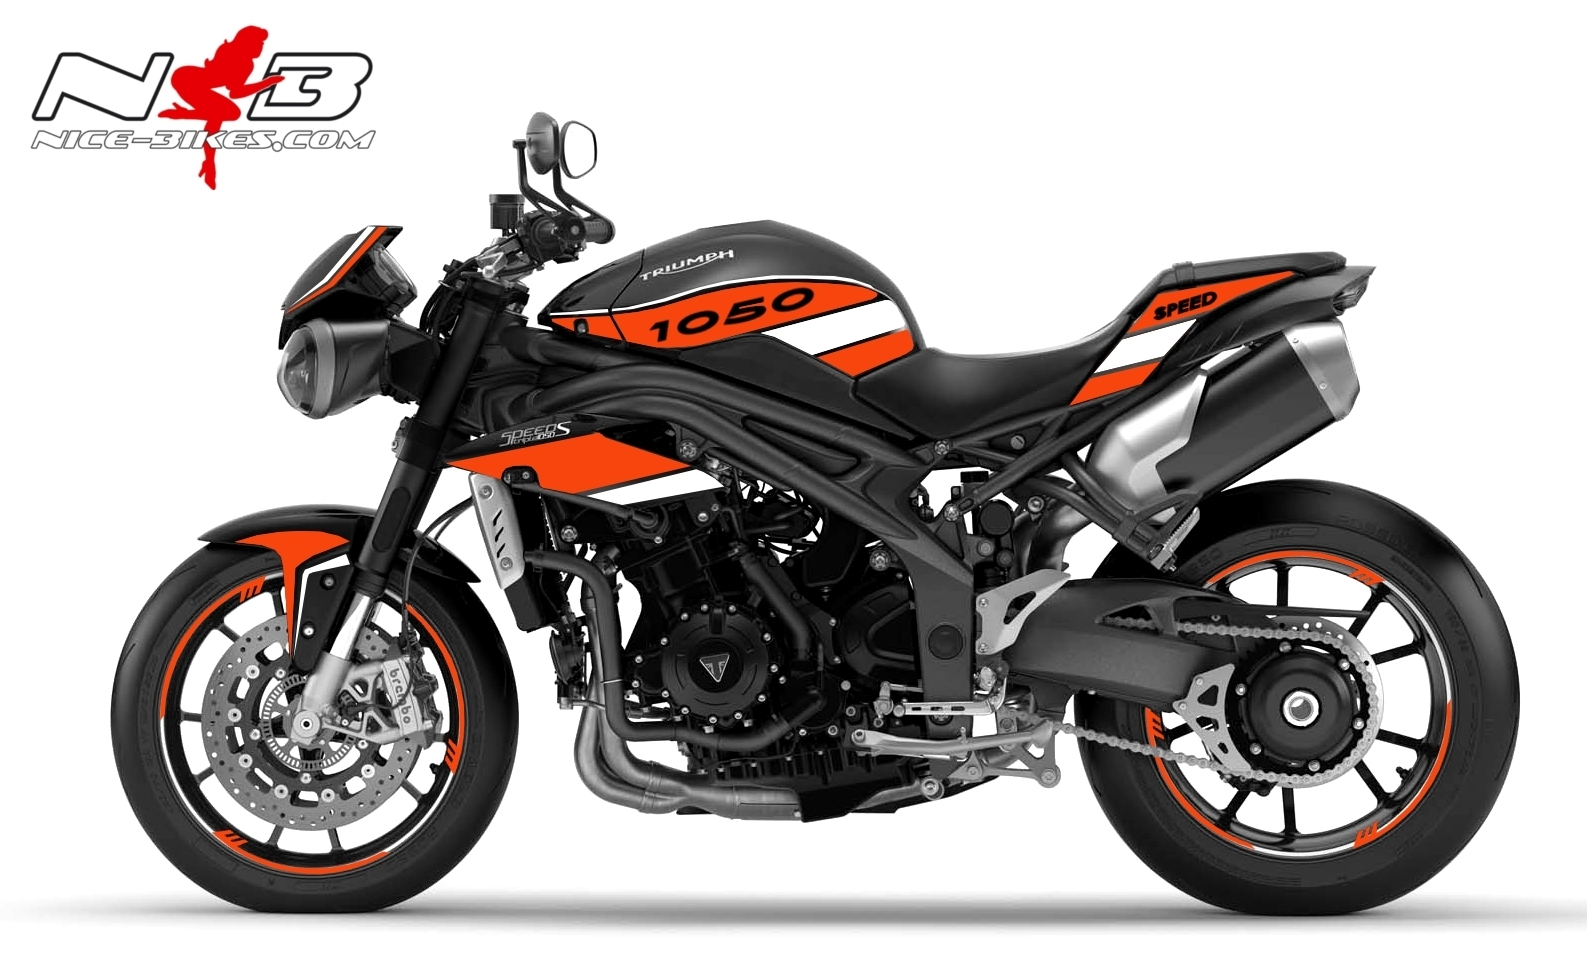 Speed Triple 1050 S Dekor orange auf schwarzer Maschine 2016-